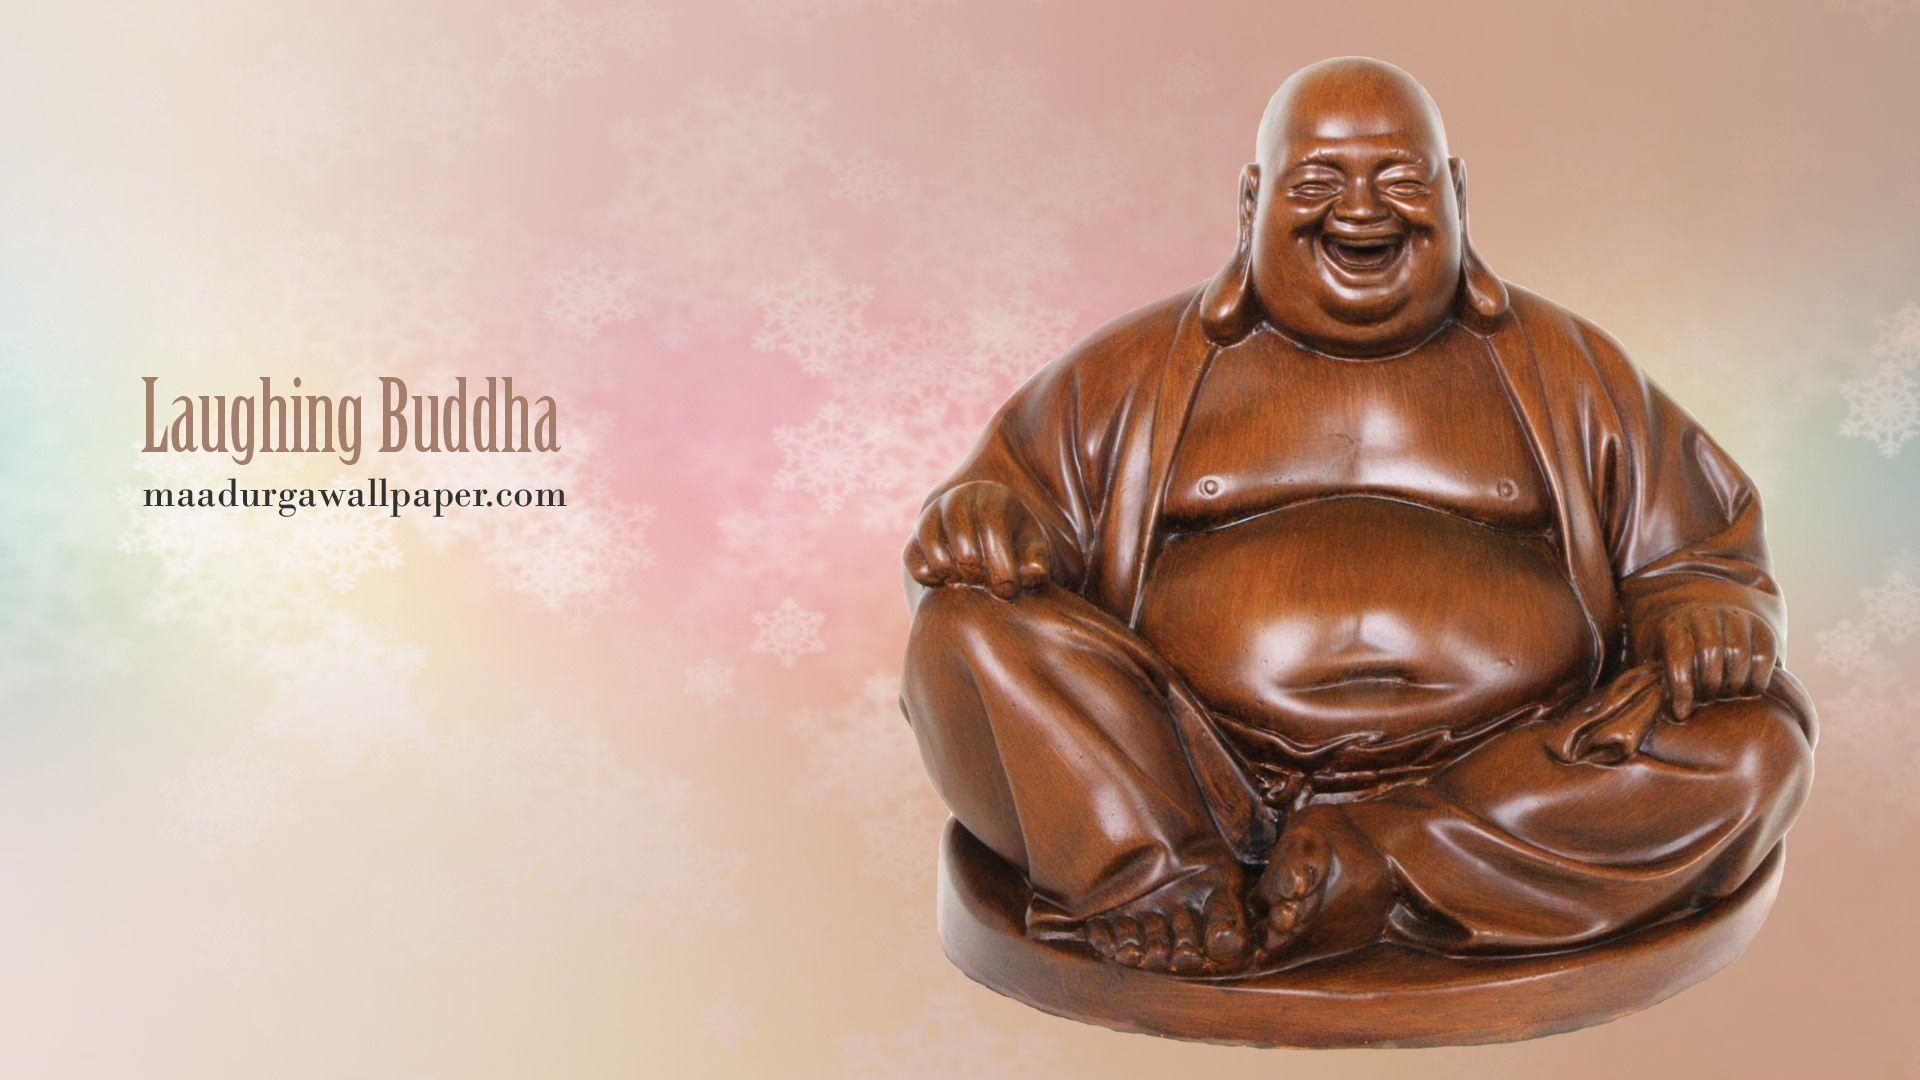 laughing buddha pictures - HD 1920×1080